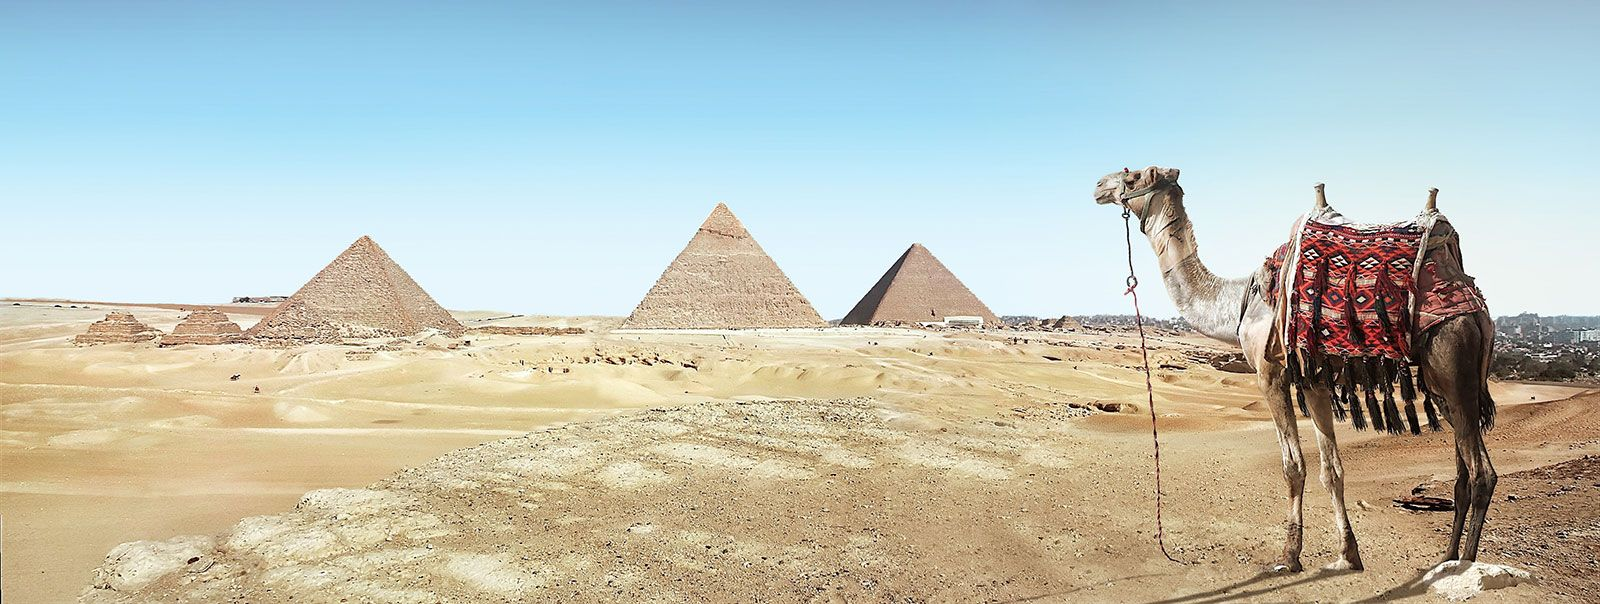 Memorable Egyptian adventures on a tight budget